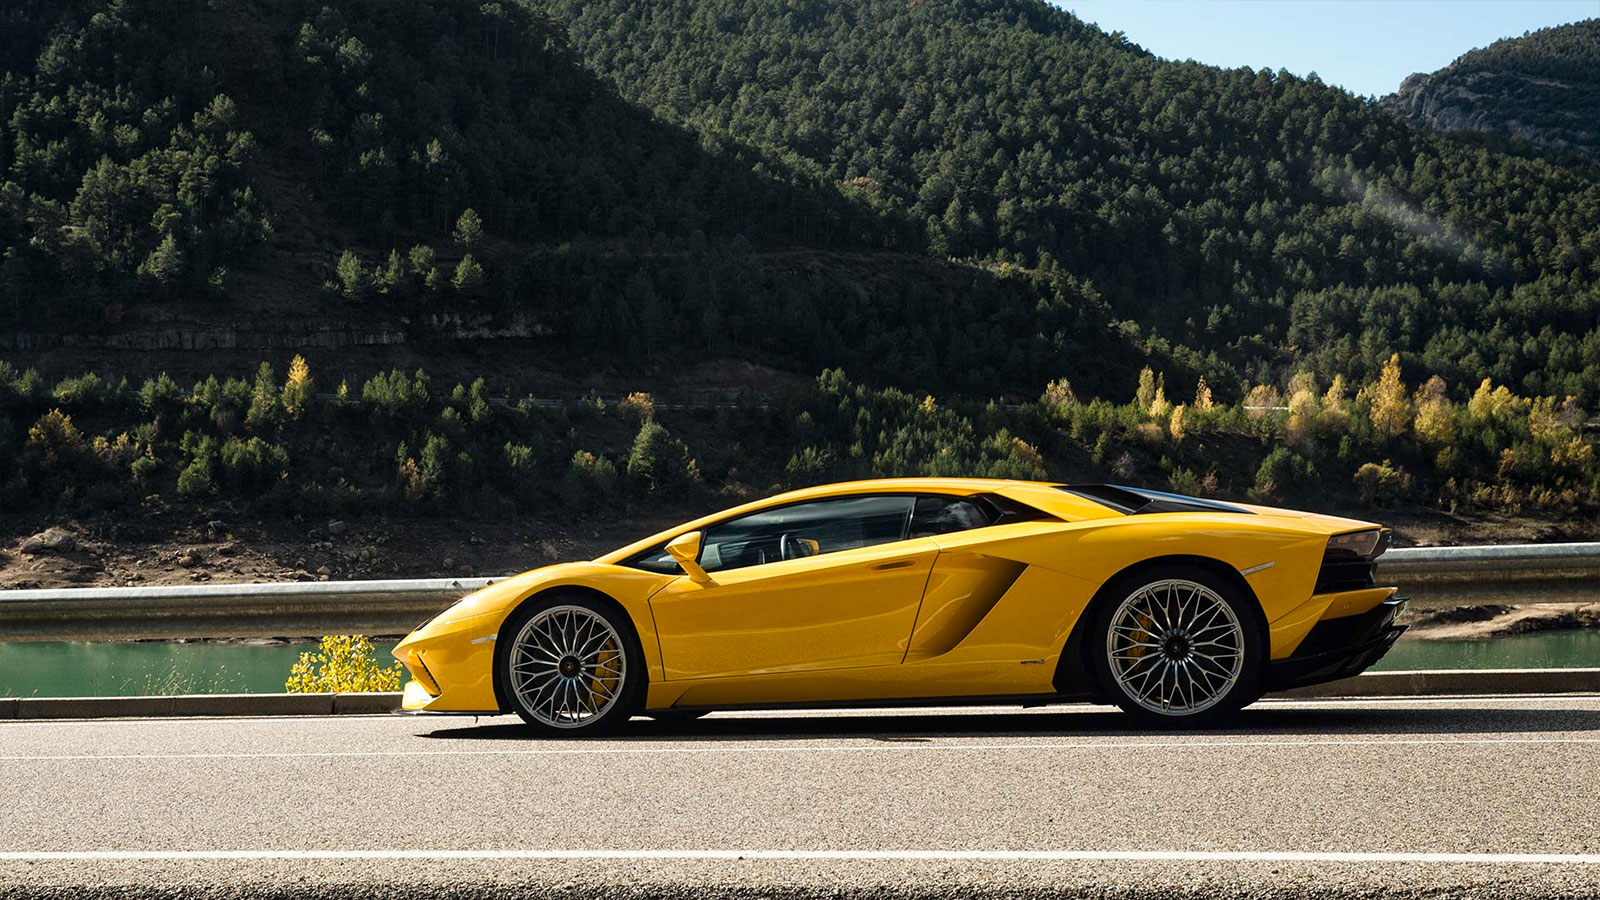 Lamborghini Aventador S Coupe - The Icon Reborn image 3